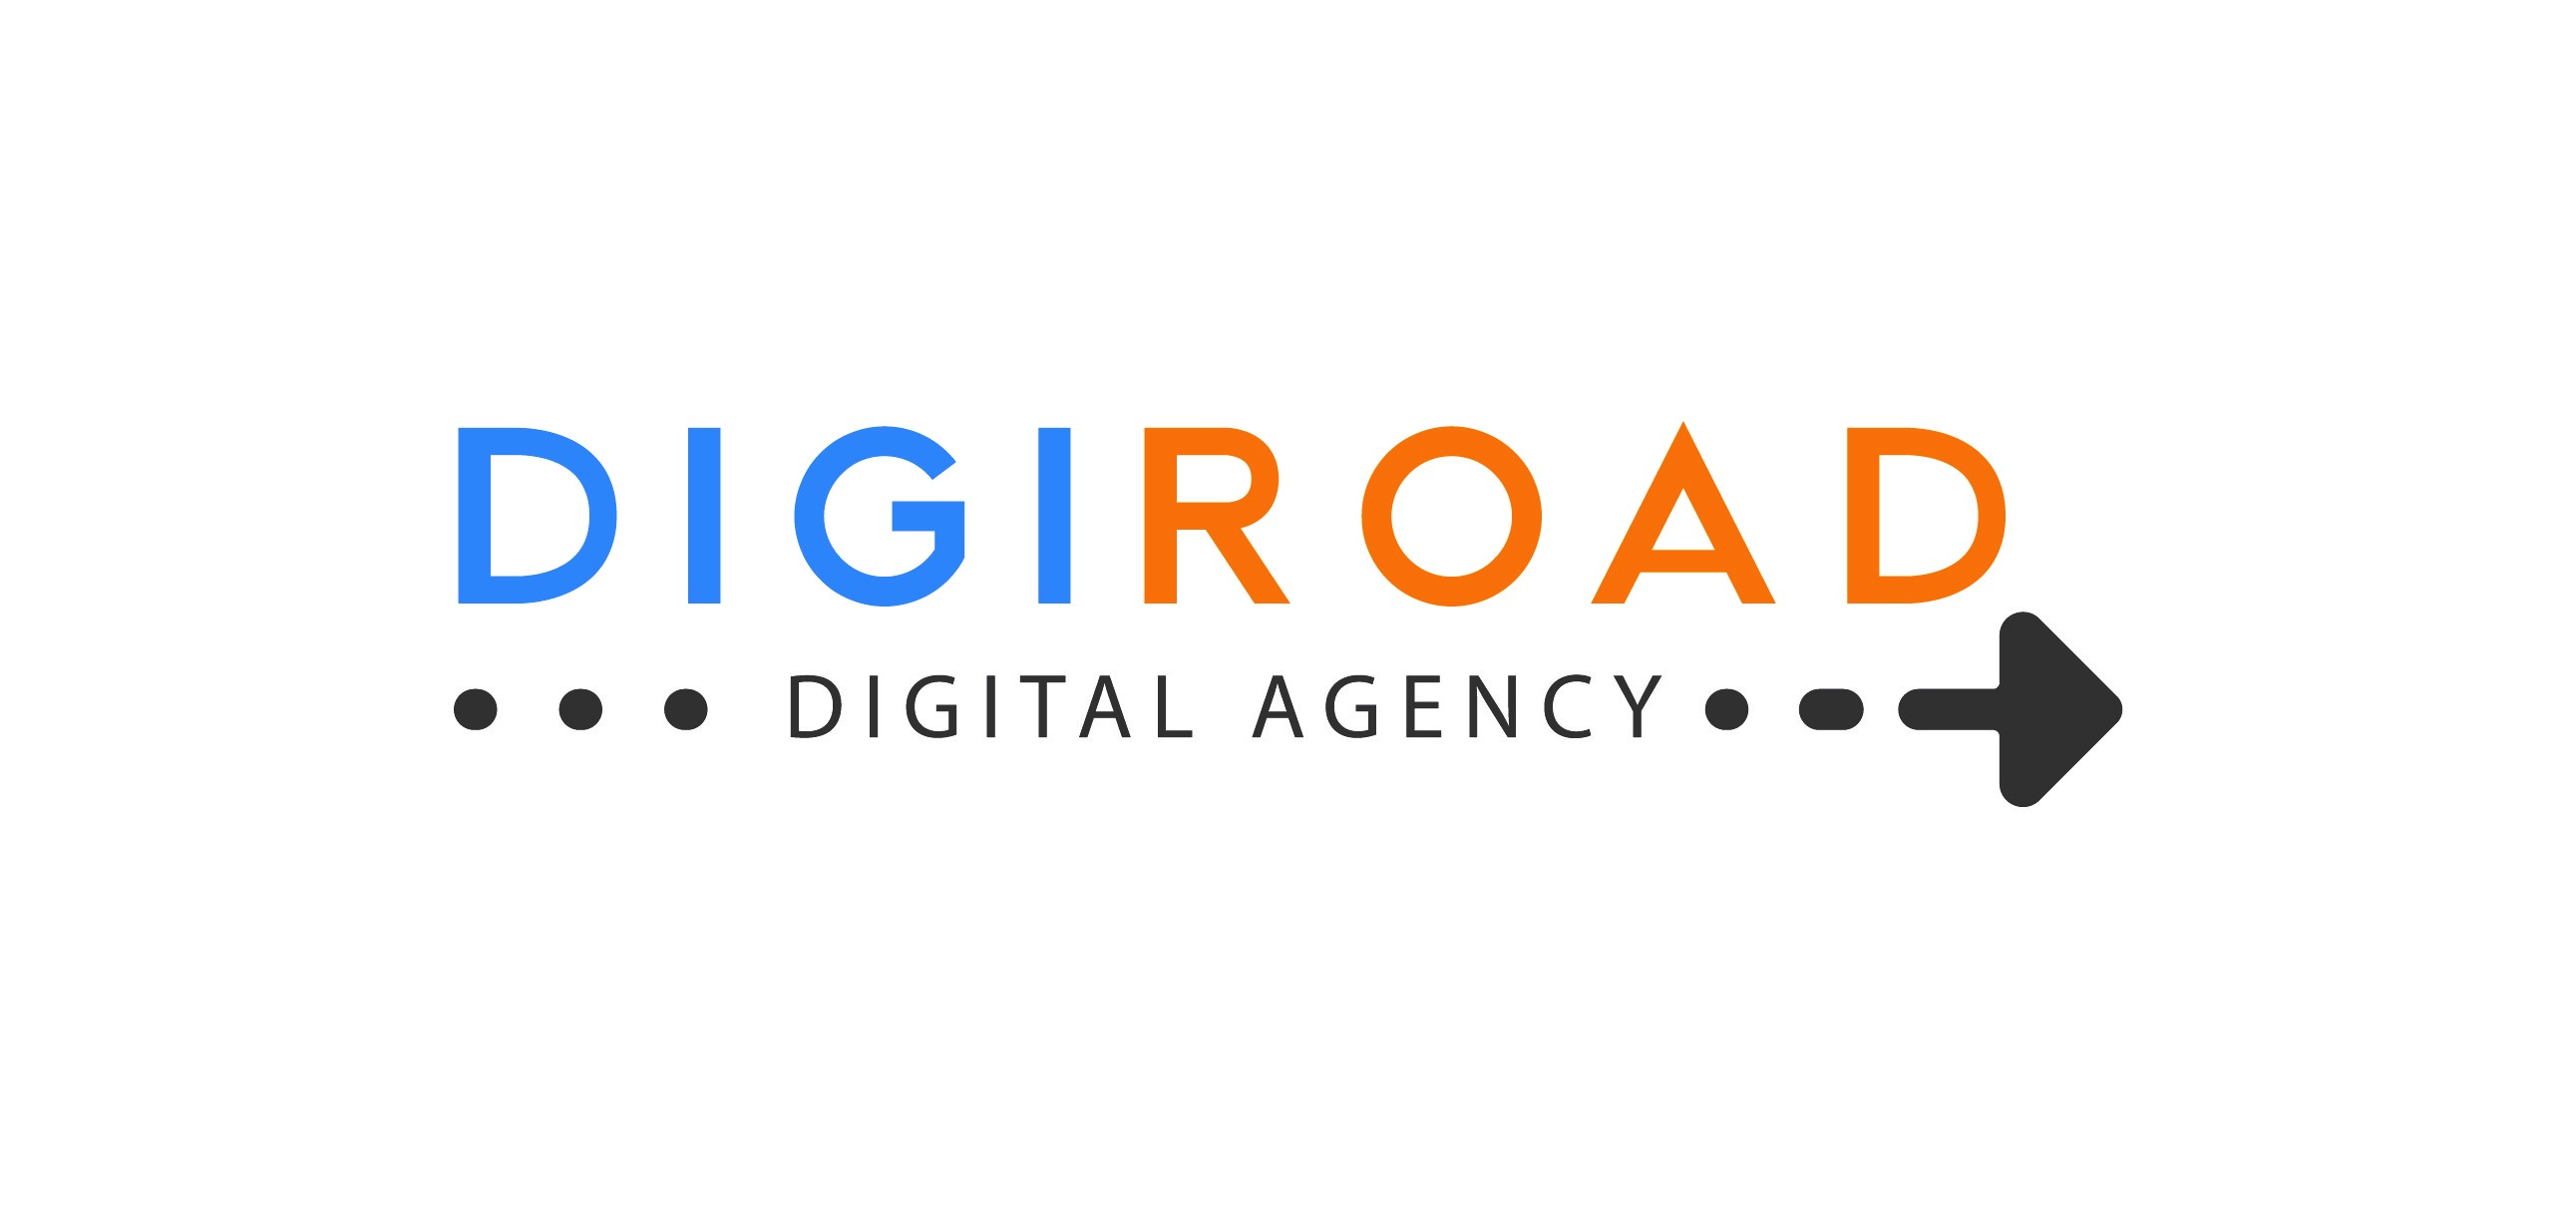 Digiroad - Digital Agency